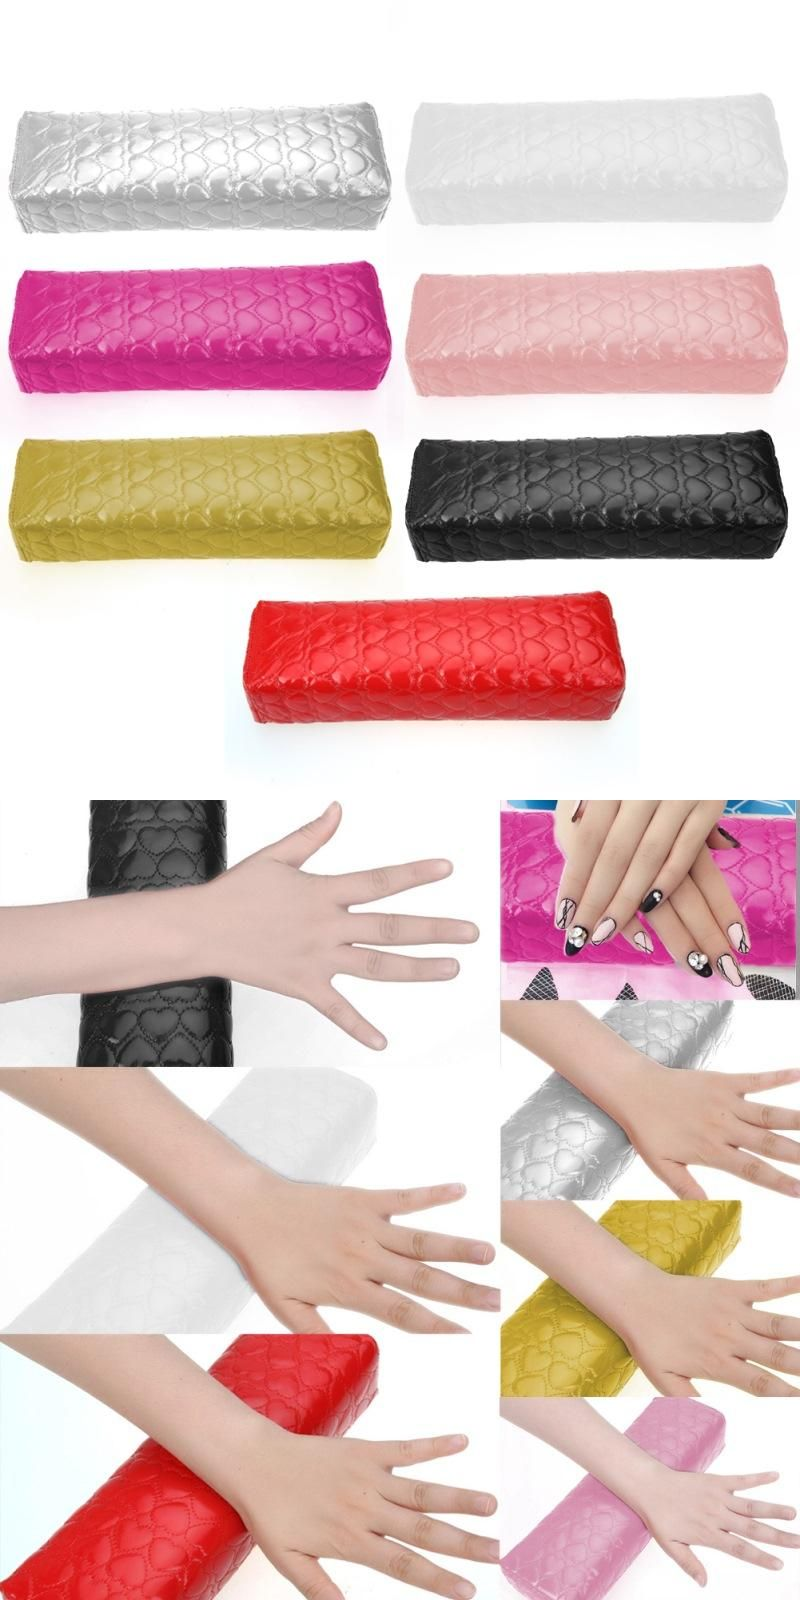 Visit To Buy Nail Art Hand Pillow Rest Soft Pu Hand Cushion Nail Art Design Arm Holder For Manicure Hand Rest Tools E Hand Pillow Pillow Art Nail Art Designs